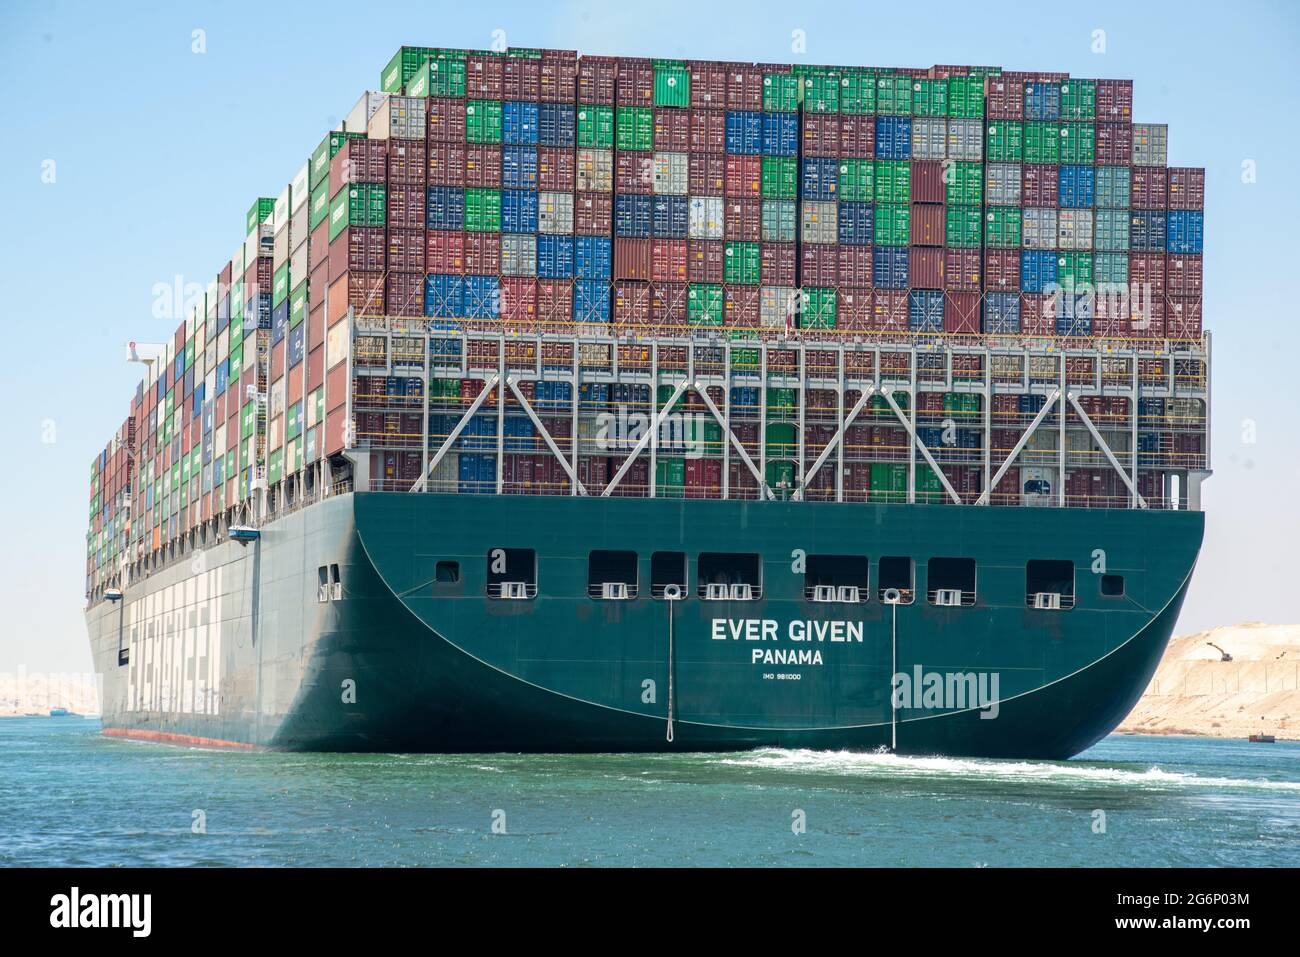 """Suez Canal, Egypt - 7 July 2021 - The huge container ship Ever Given that blocked the Suez Canal  in March 2021 is free at last and enroute to Rotterdam after a compensation agreement was made between the Suez Canal Authority and Shoei Kisen Kaisha, the Japanese ship owners.  The SCA head Osama Rabie declared, """"I announce to the world that we have reached a deal.""""  The Ever Given was freed from blockage in a salvage operation that lasted 6 days, however in that short amount of time it created a traffic jam backlog of 420 ships at the chokepoint in just the first 4 days. Stock Photo"""